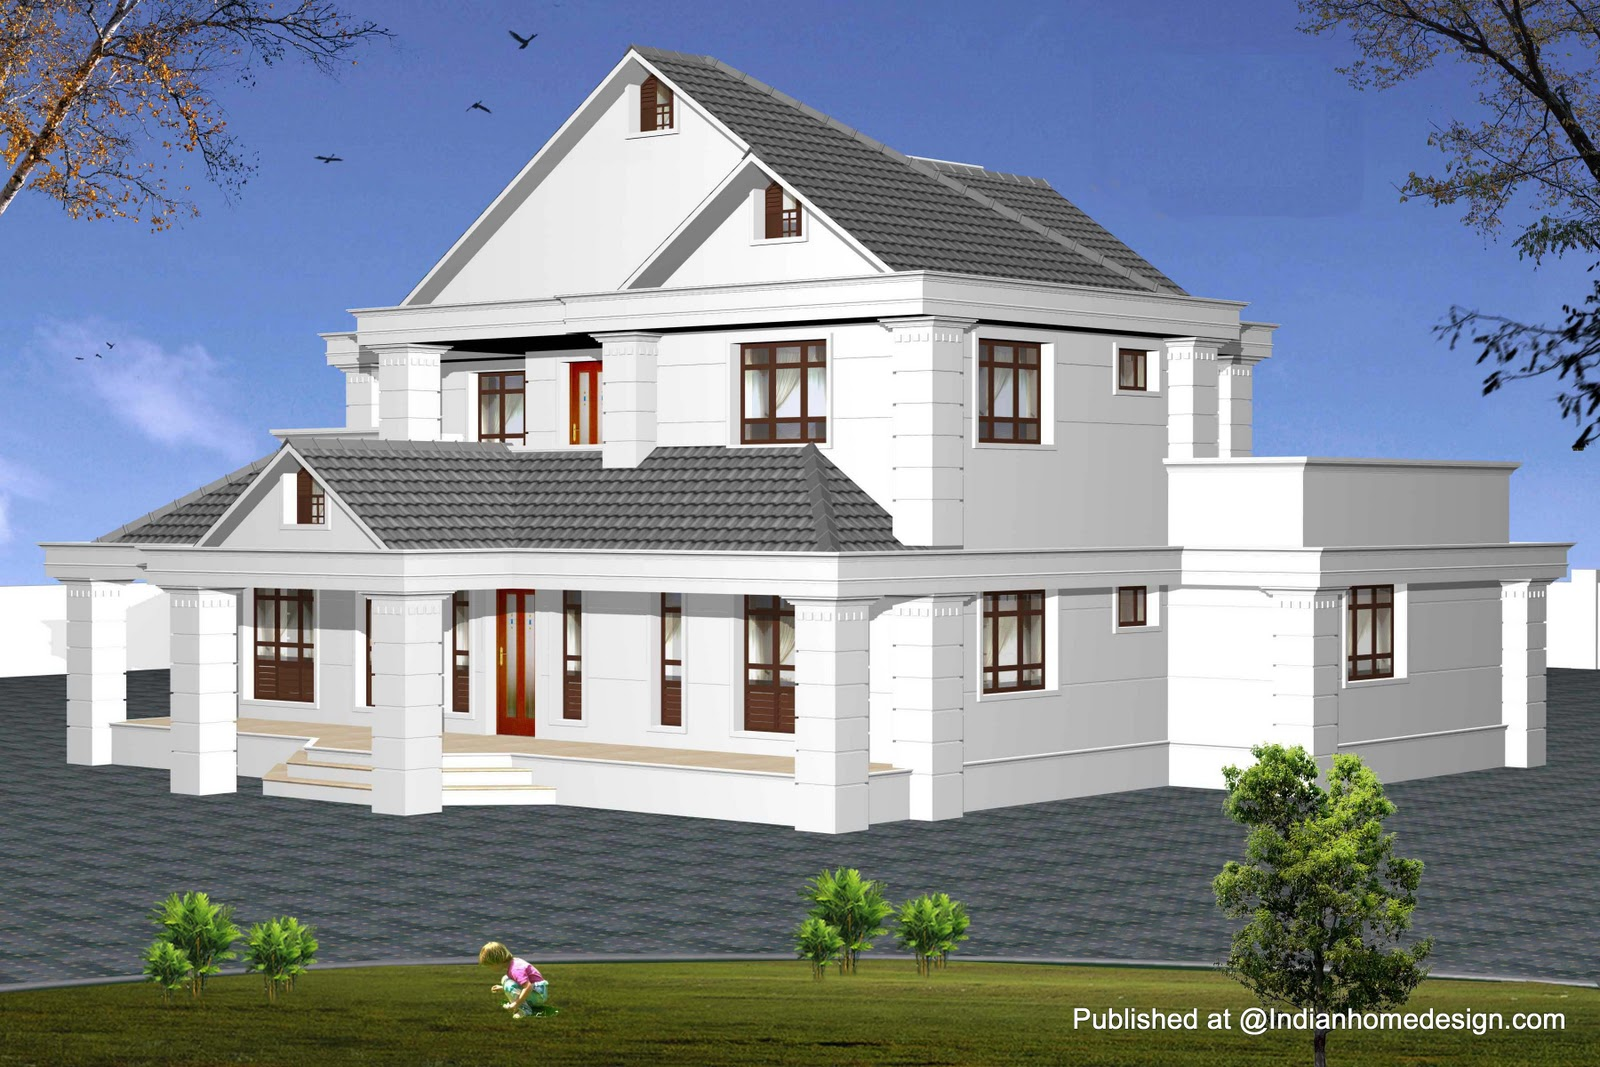 30 stunning model house plans home building plans 24879 for South indian model house plan